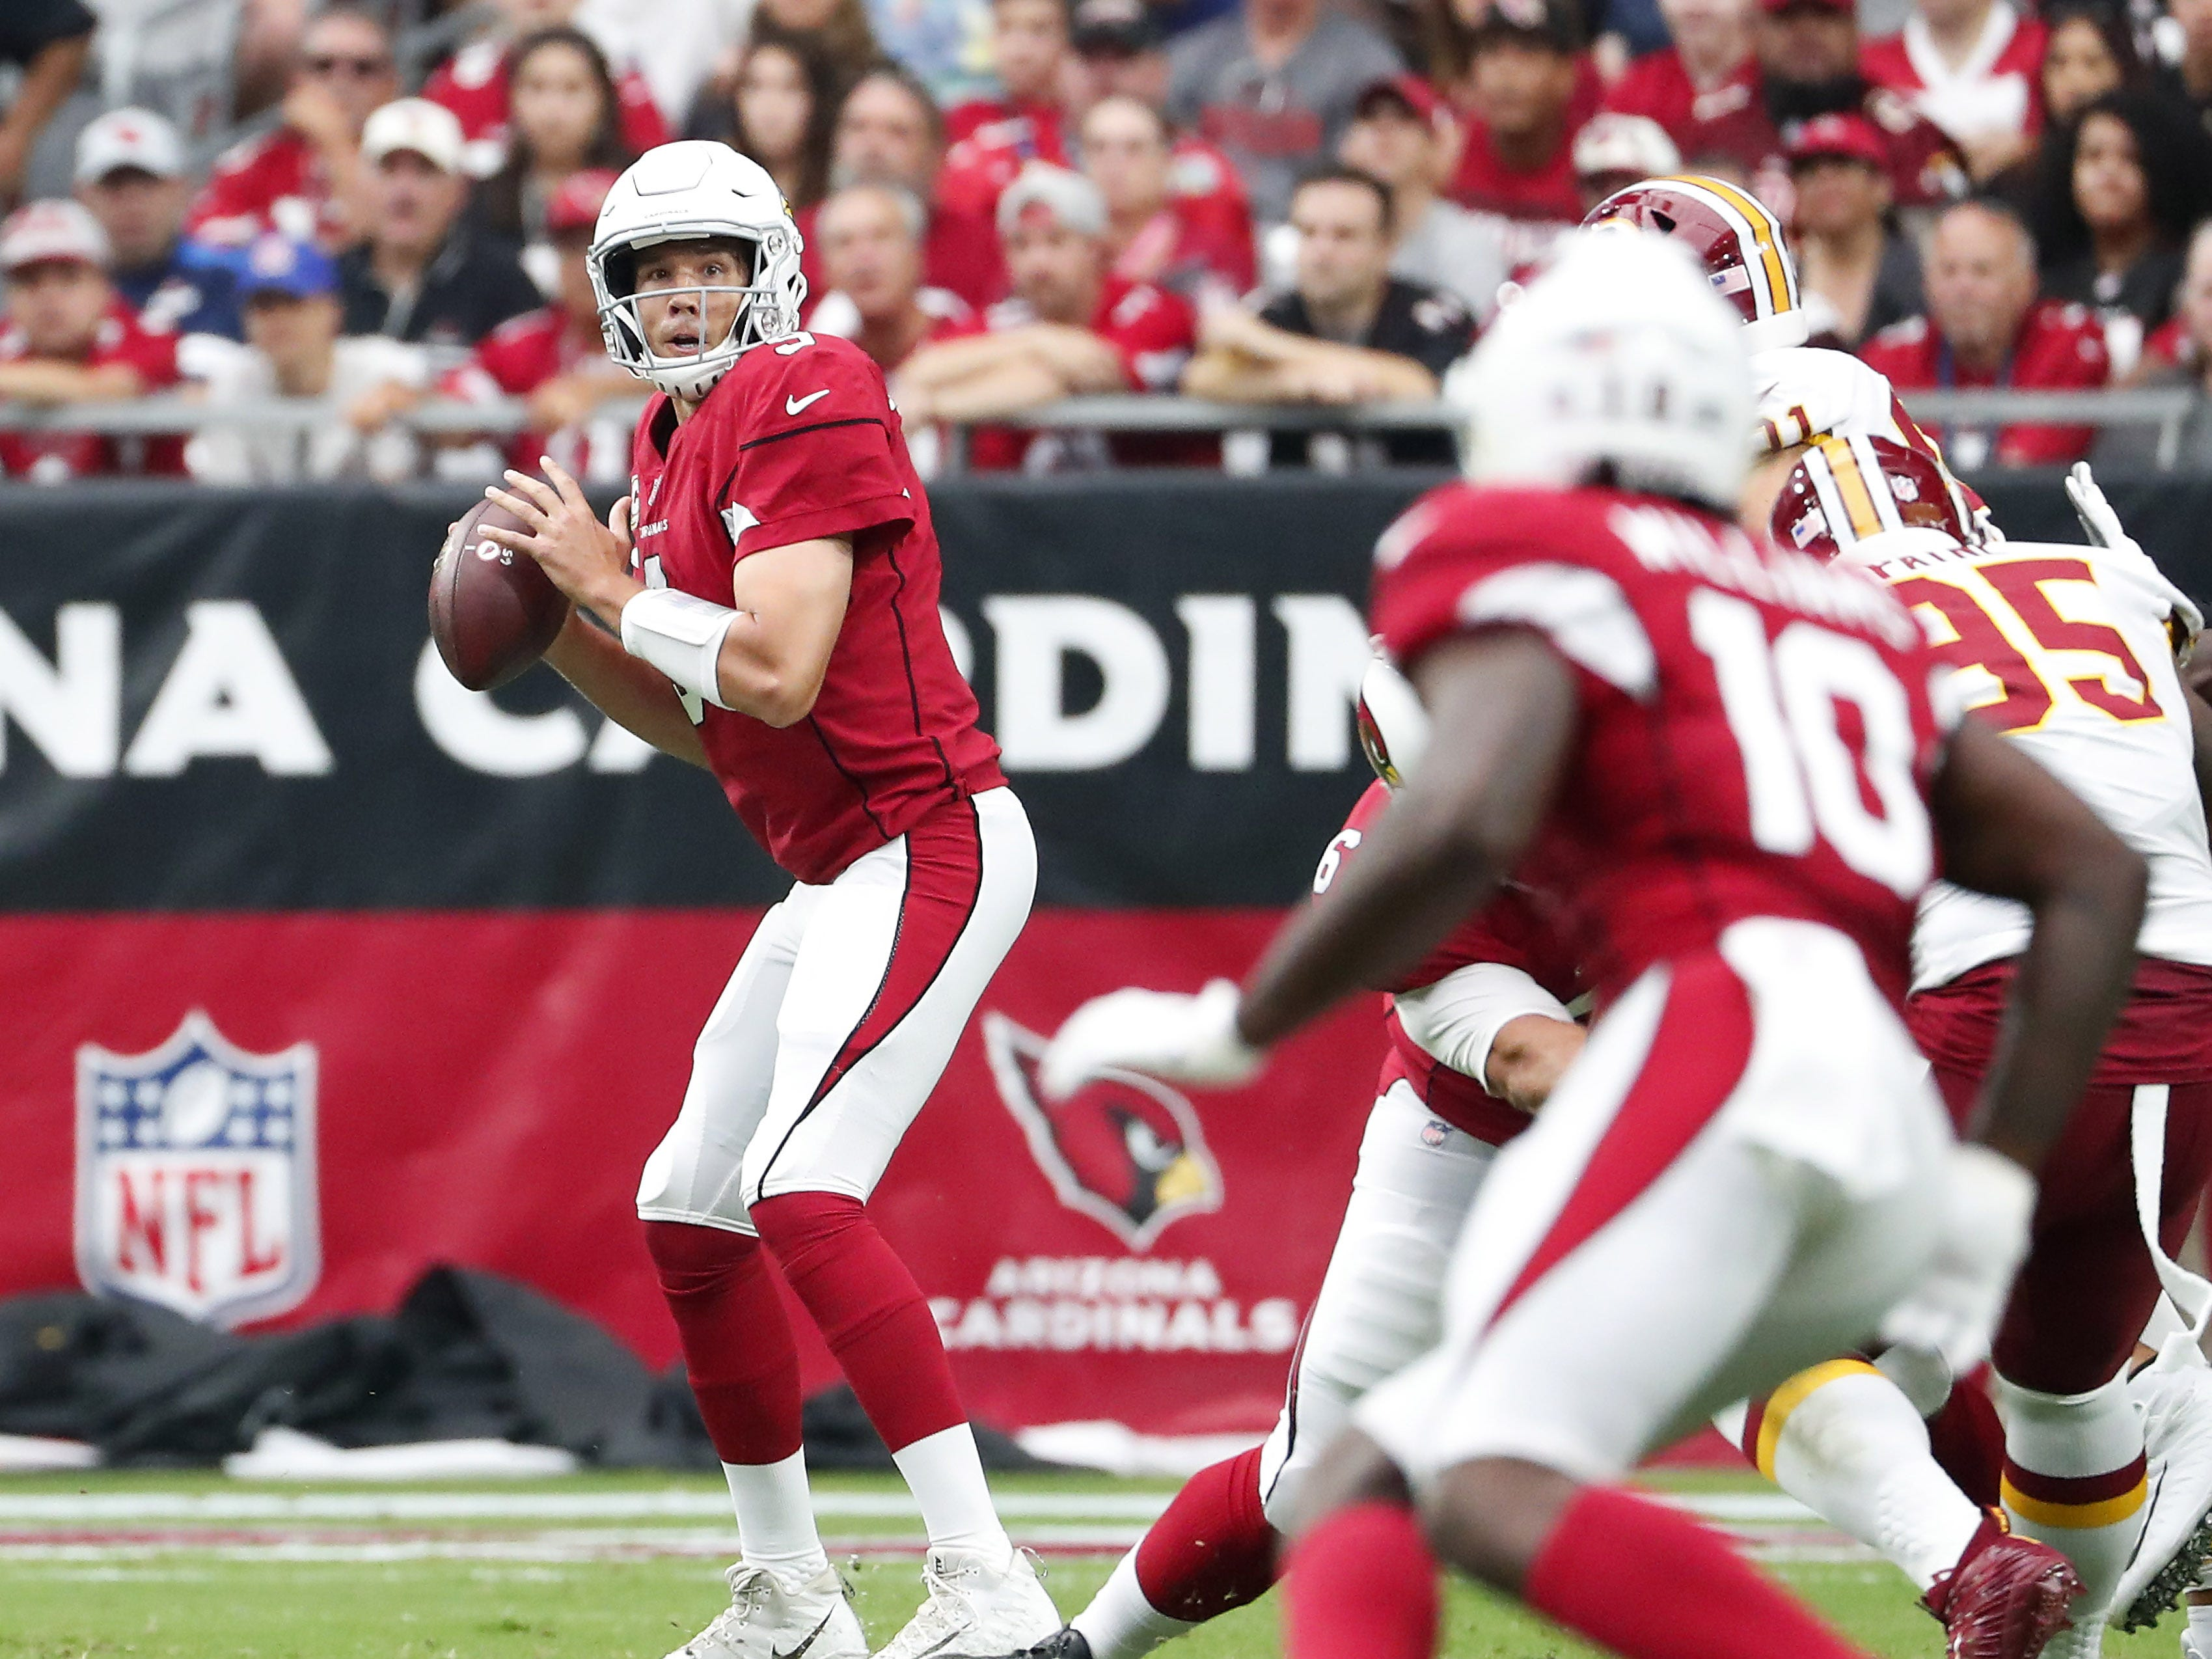 Arizona Cardinals quarterback Sam Bradford (9) looks to pass against the Washington Redskins during the first quarter at State Farm Stadium in Glendale, Ariz. September 9. 2018.